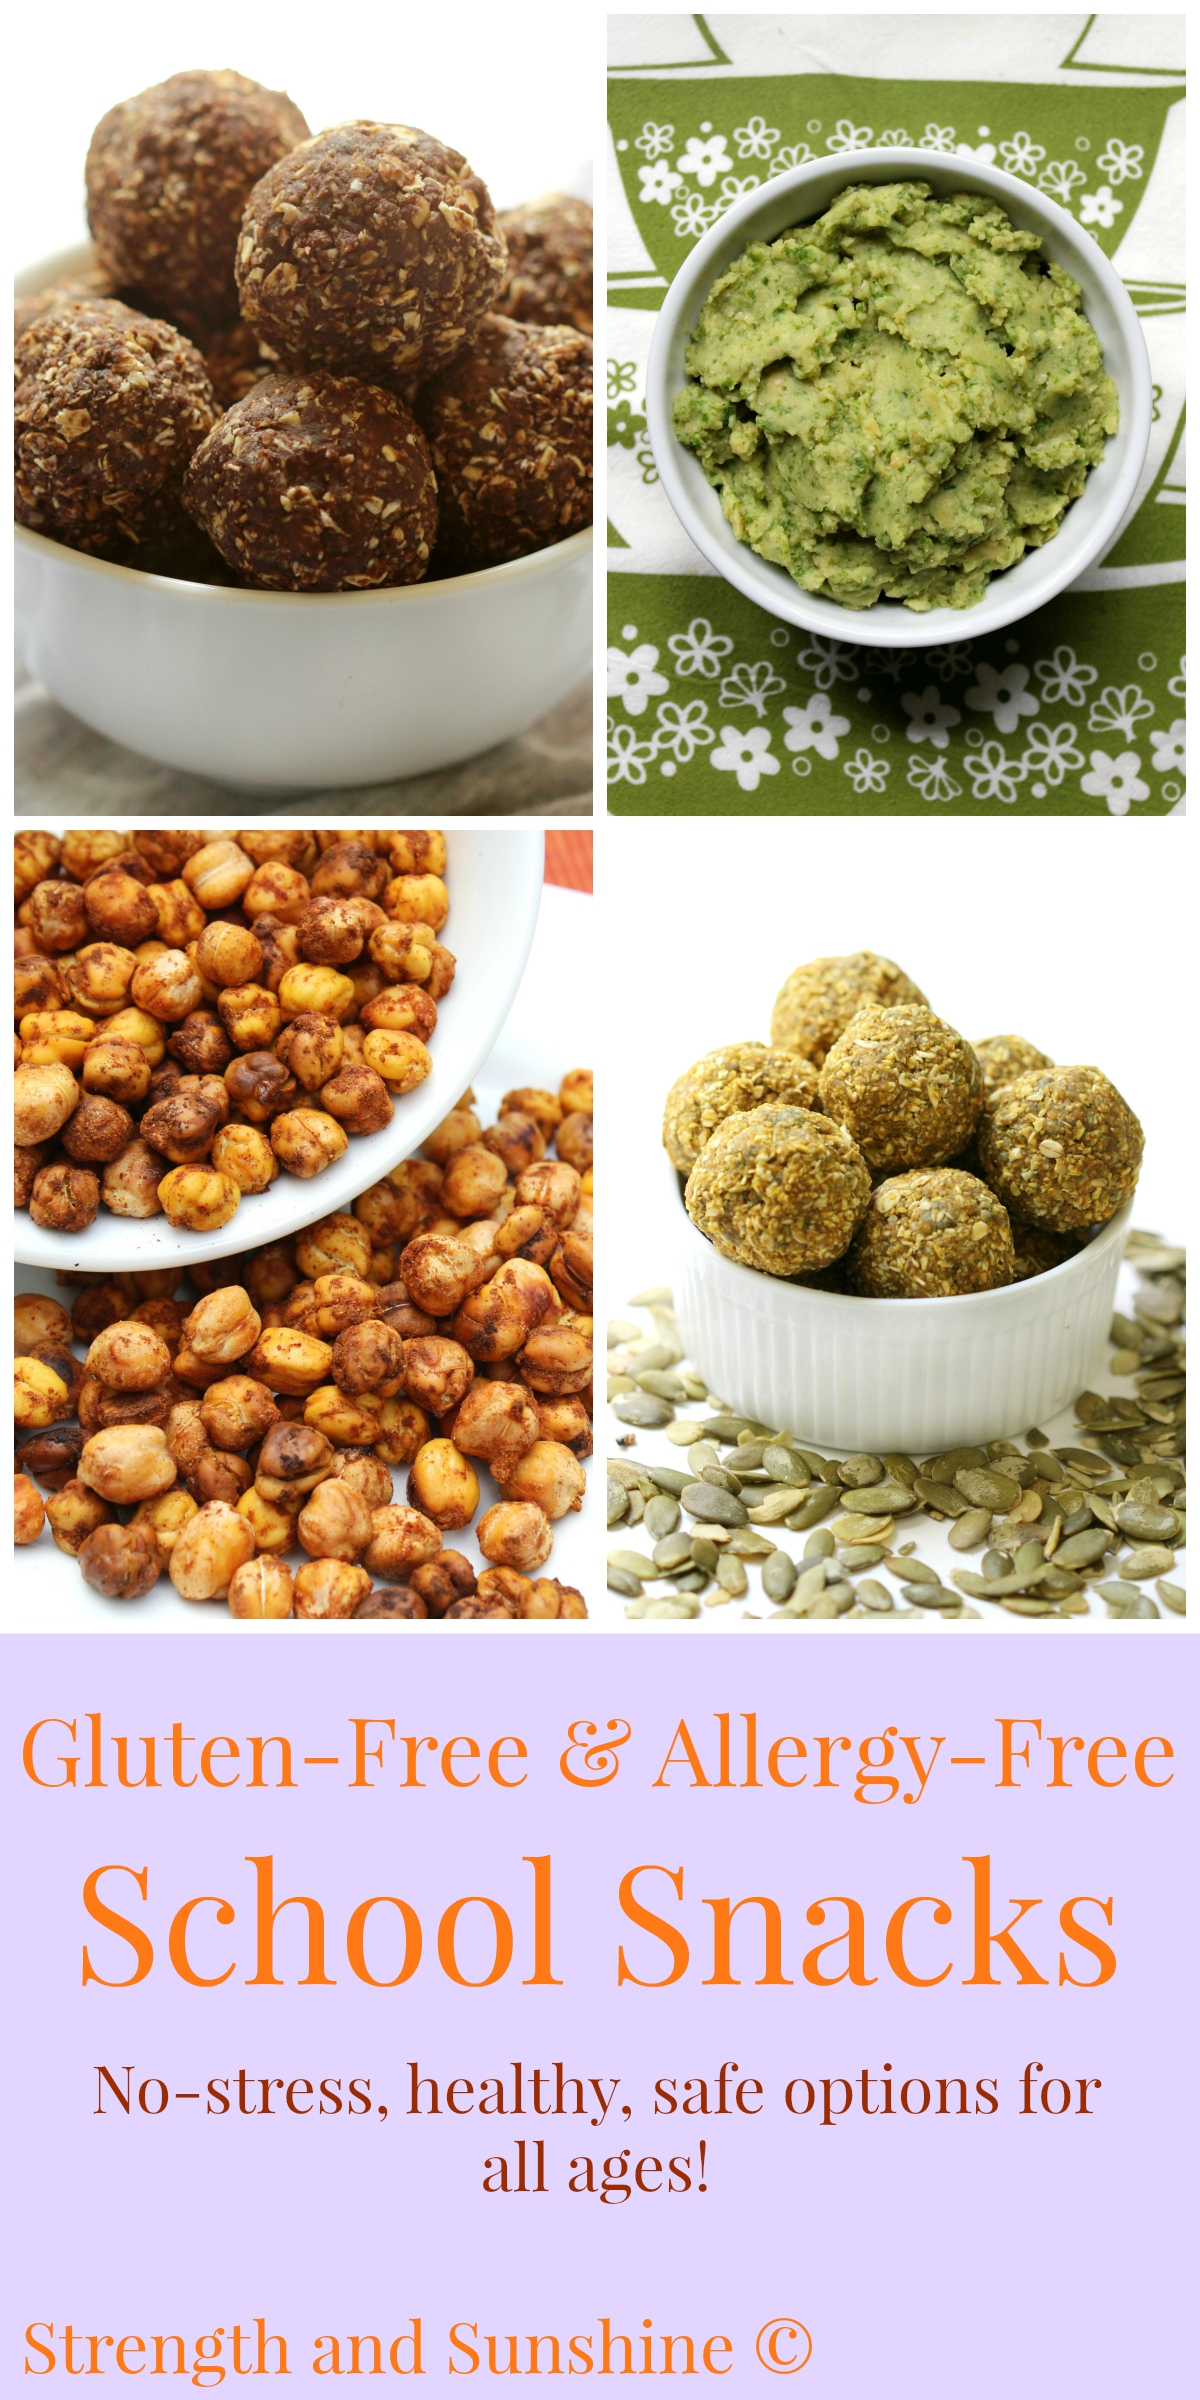 Gluten-Free & Allergy-Free School Snacks | Strength and Sunshine @RebeccaGF666 Options that are all healthy, gluten-free, vegan, and top 8 allergy-free.